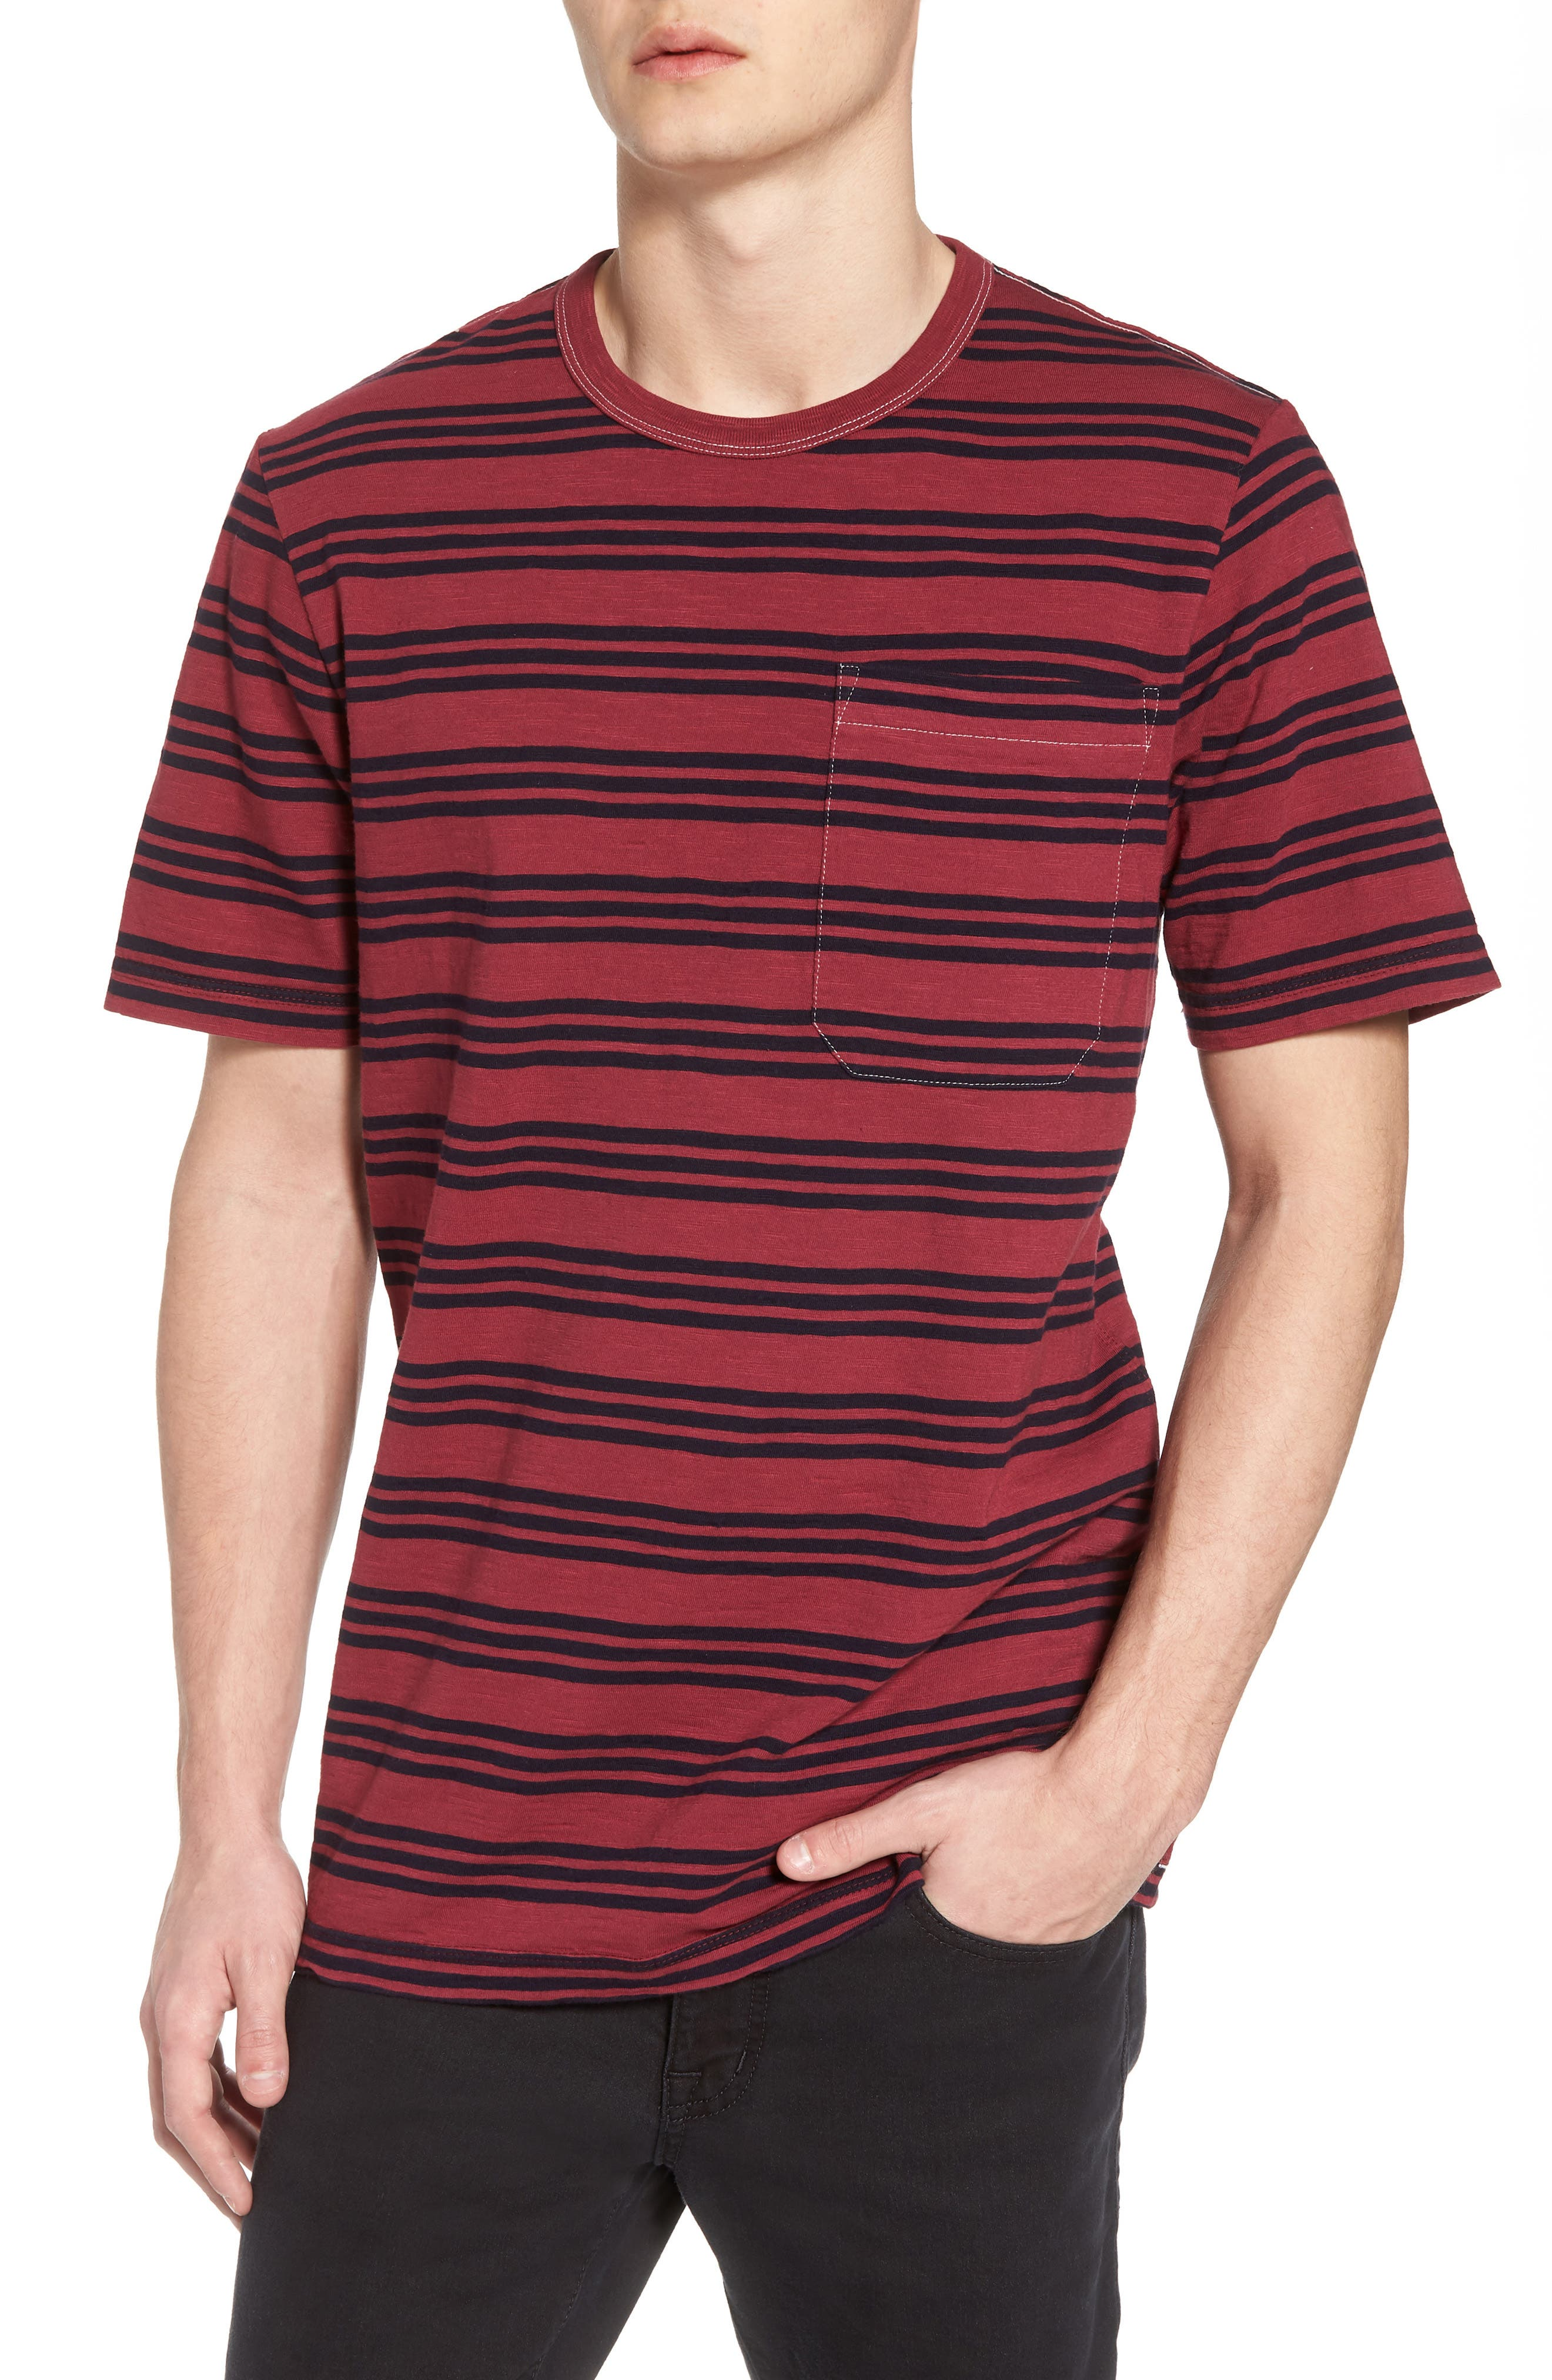 Alternate Image 1 Selected - French Connection Triple Stripe Garment Dyed T-Shirt